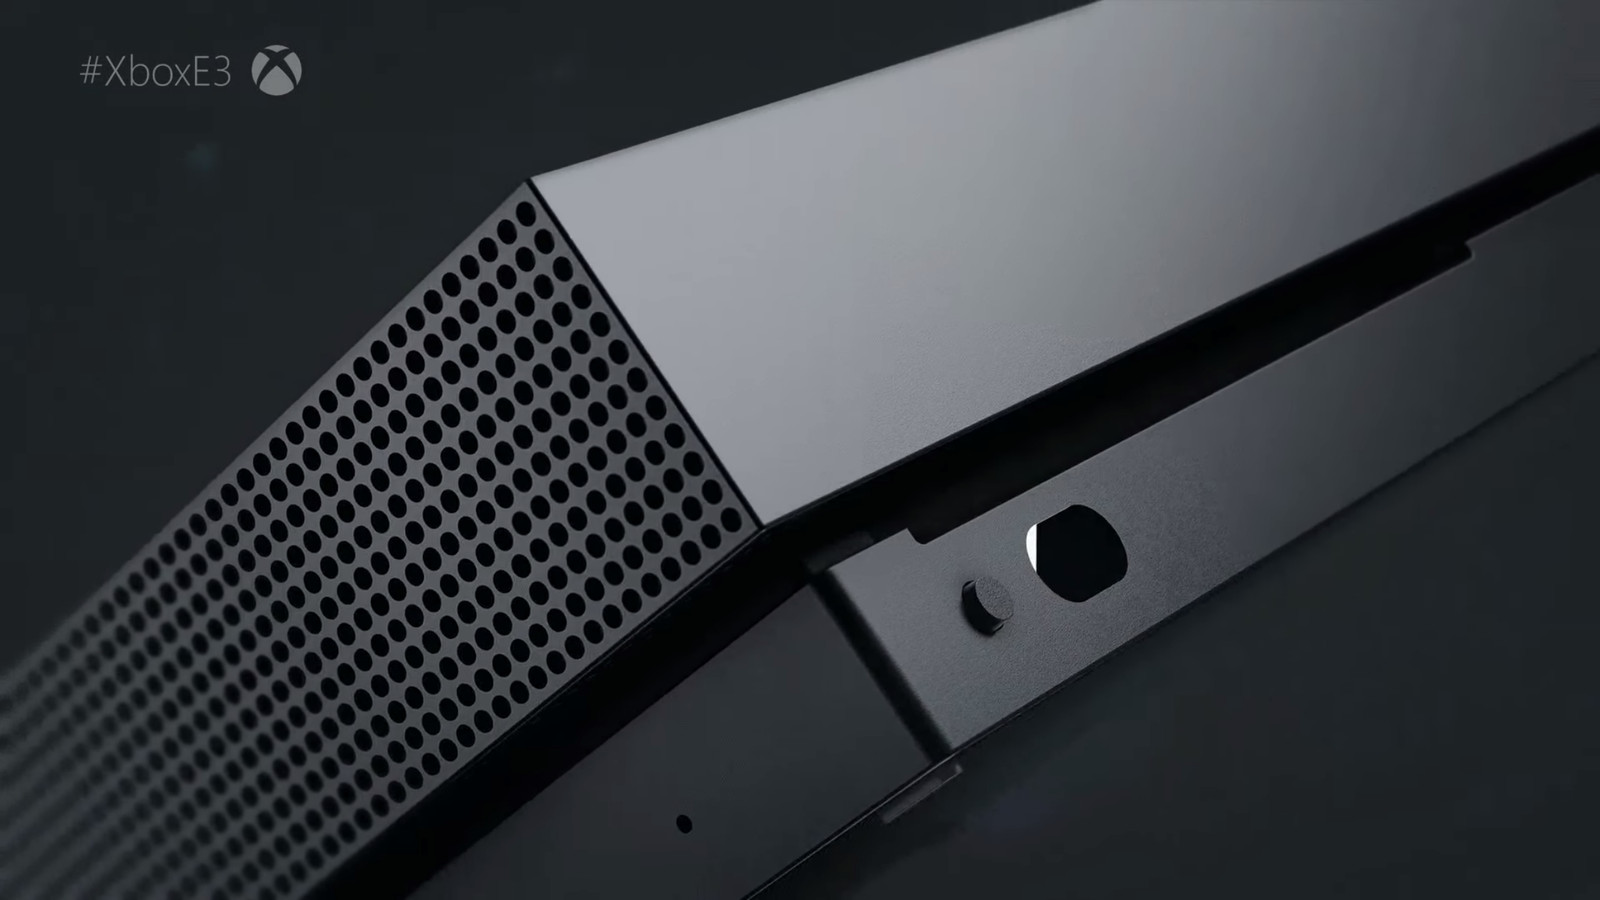 microsoft xbox at e3 2017 the 6 biggest announcements the verge